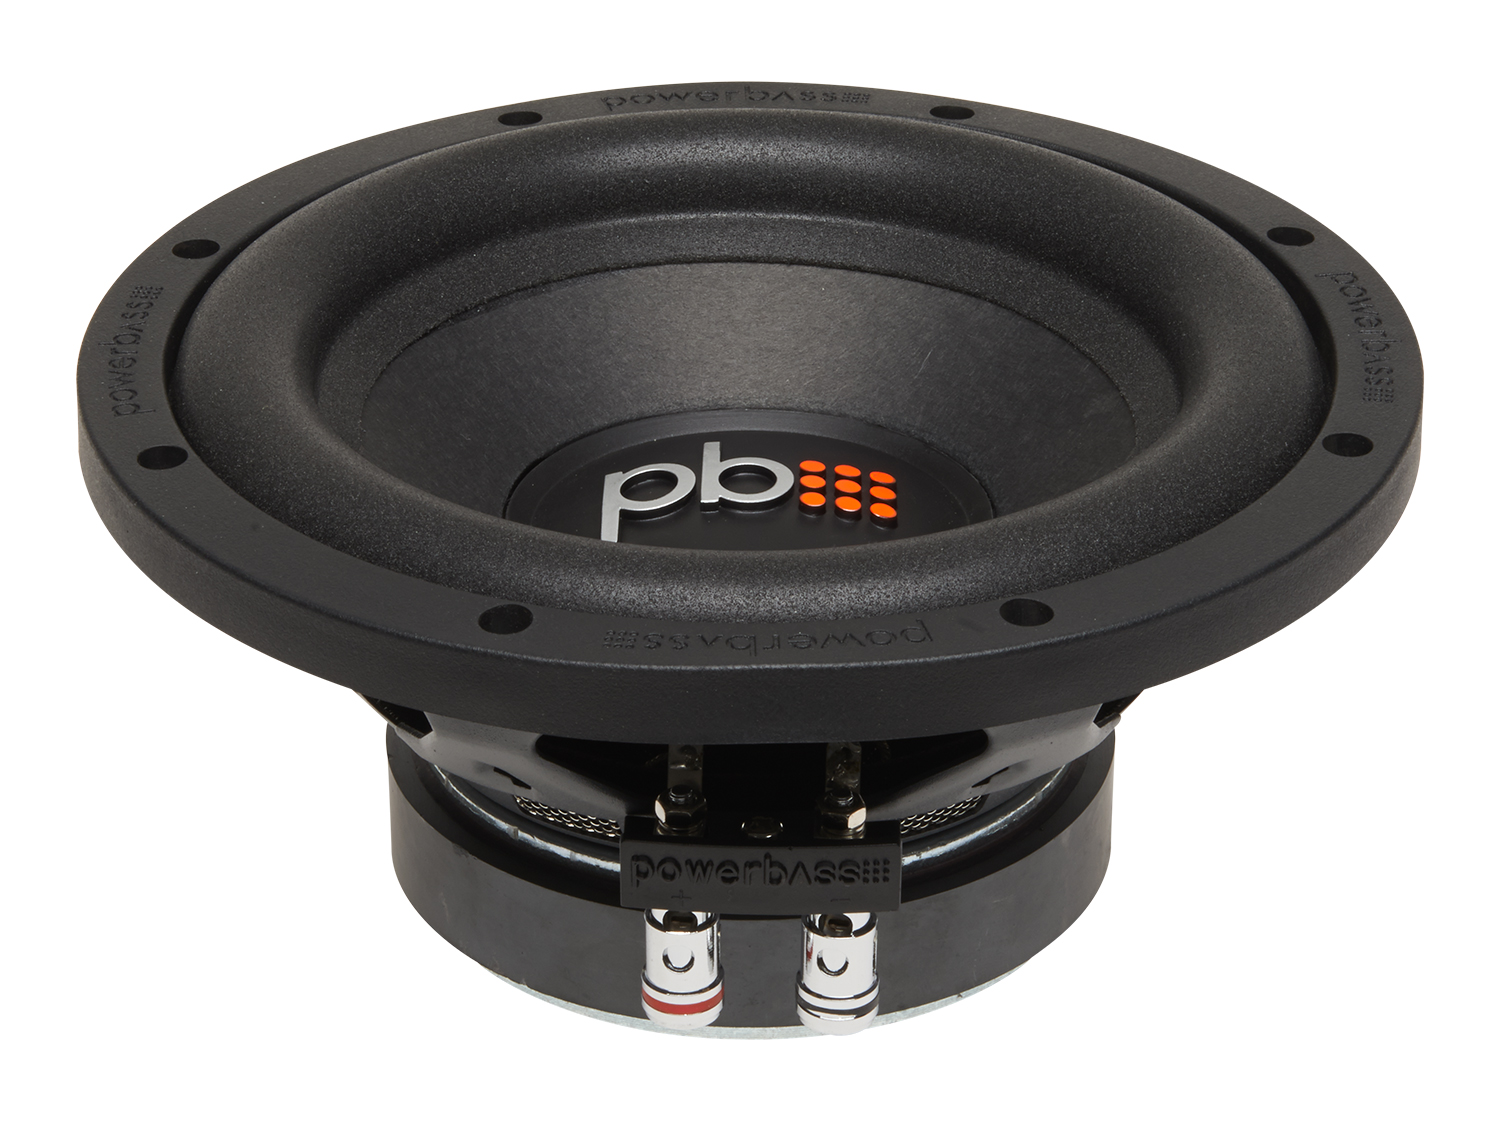 "Powerbass S-84D S-Series 8"" Dual 4-Ohm Subwoofer with Oversized Motor Structure"